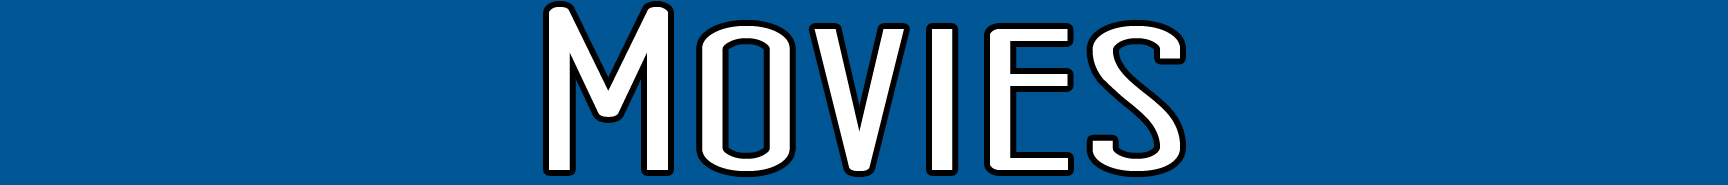 Movies Title Banner